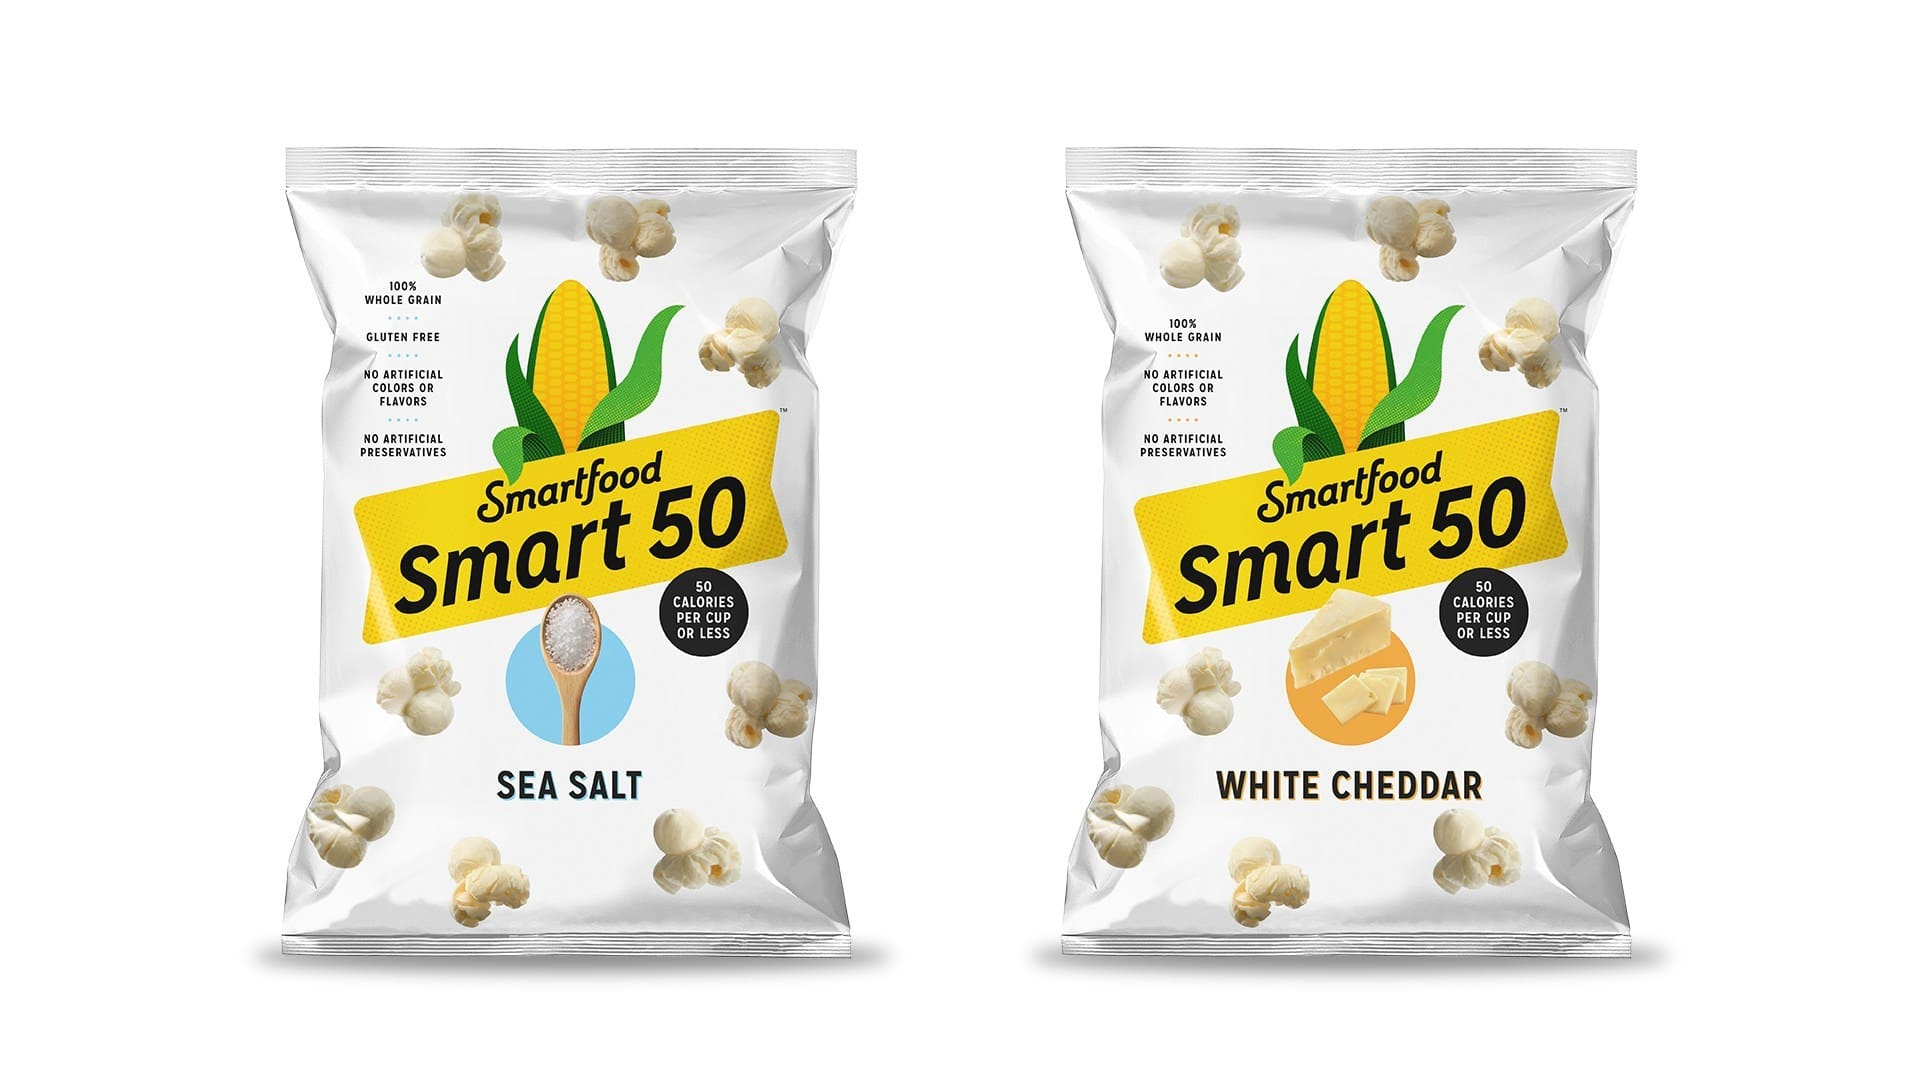 Smartfood Popcorn Launches New Smart50 Line